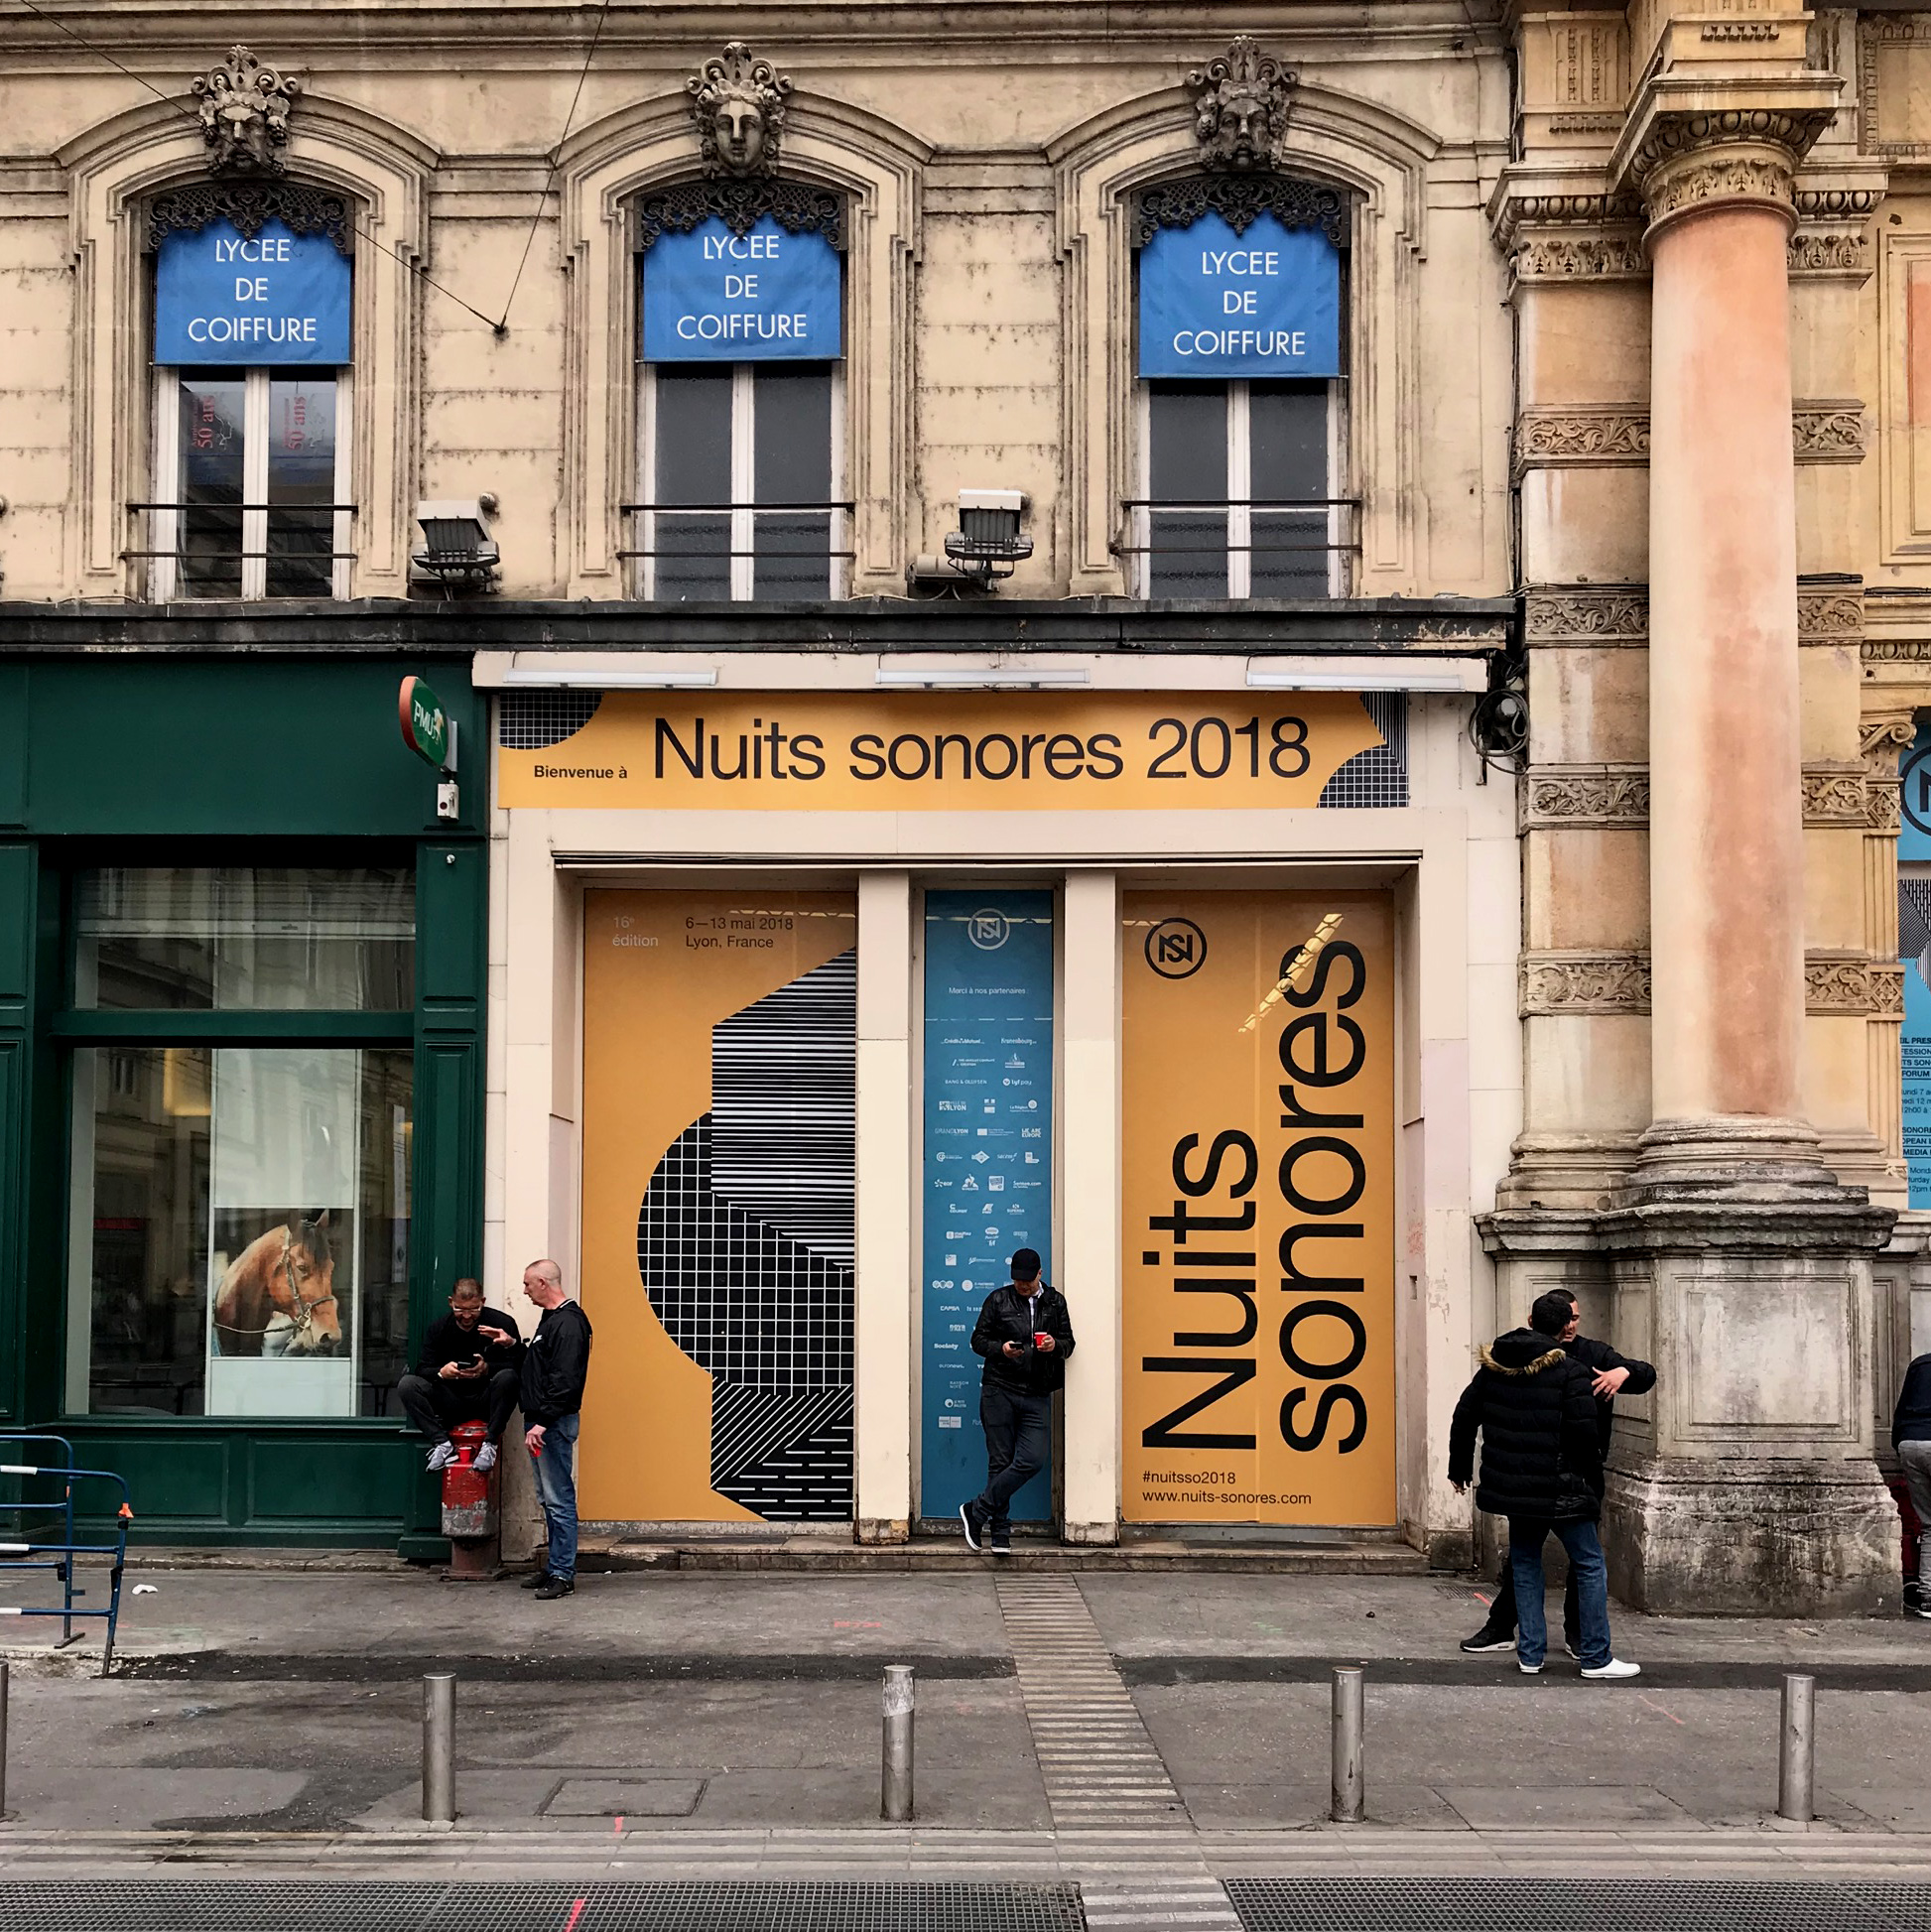 Nuits-sonores-building.jpg